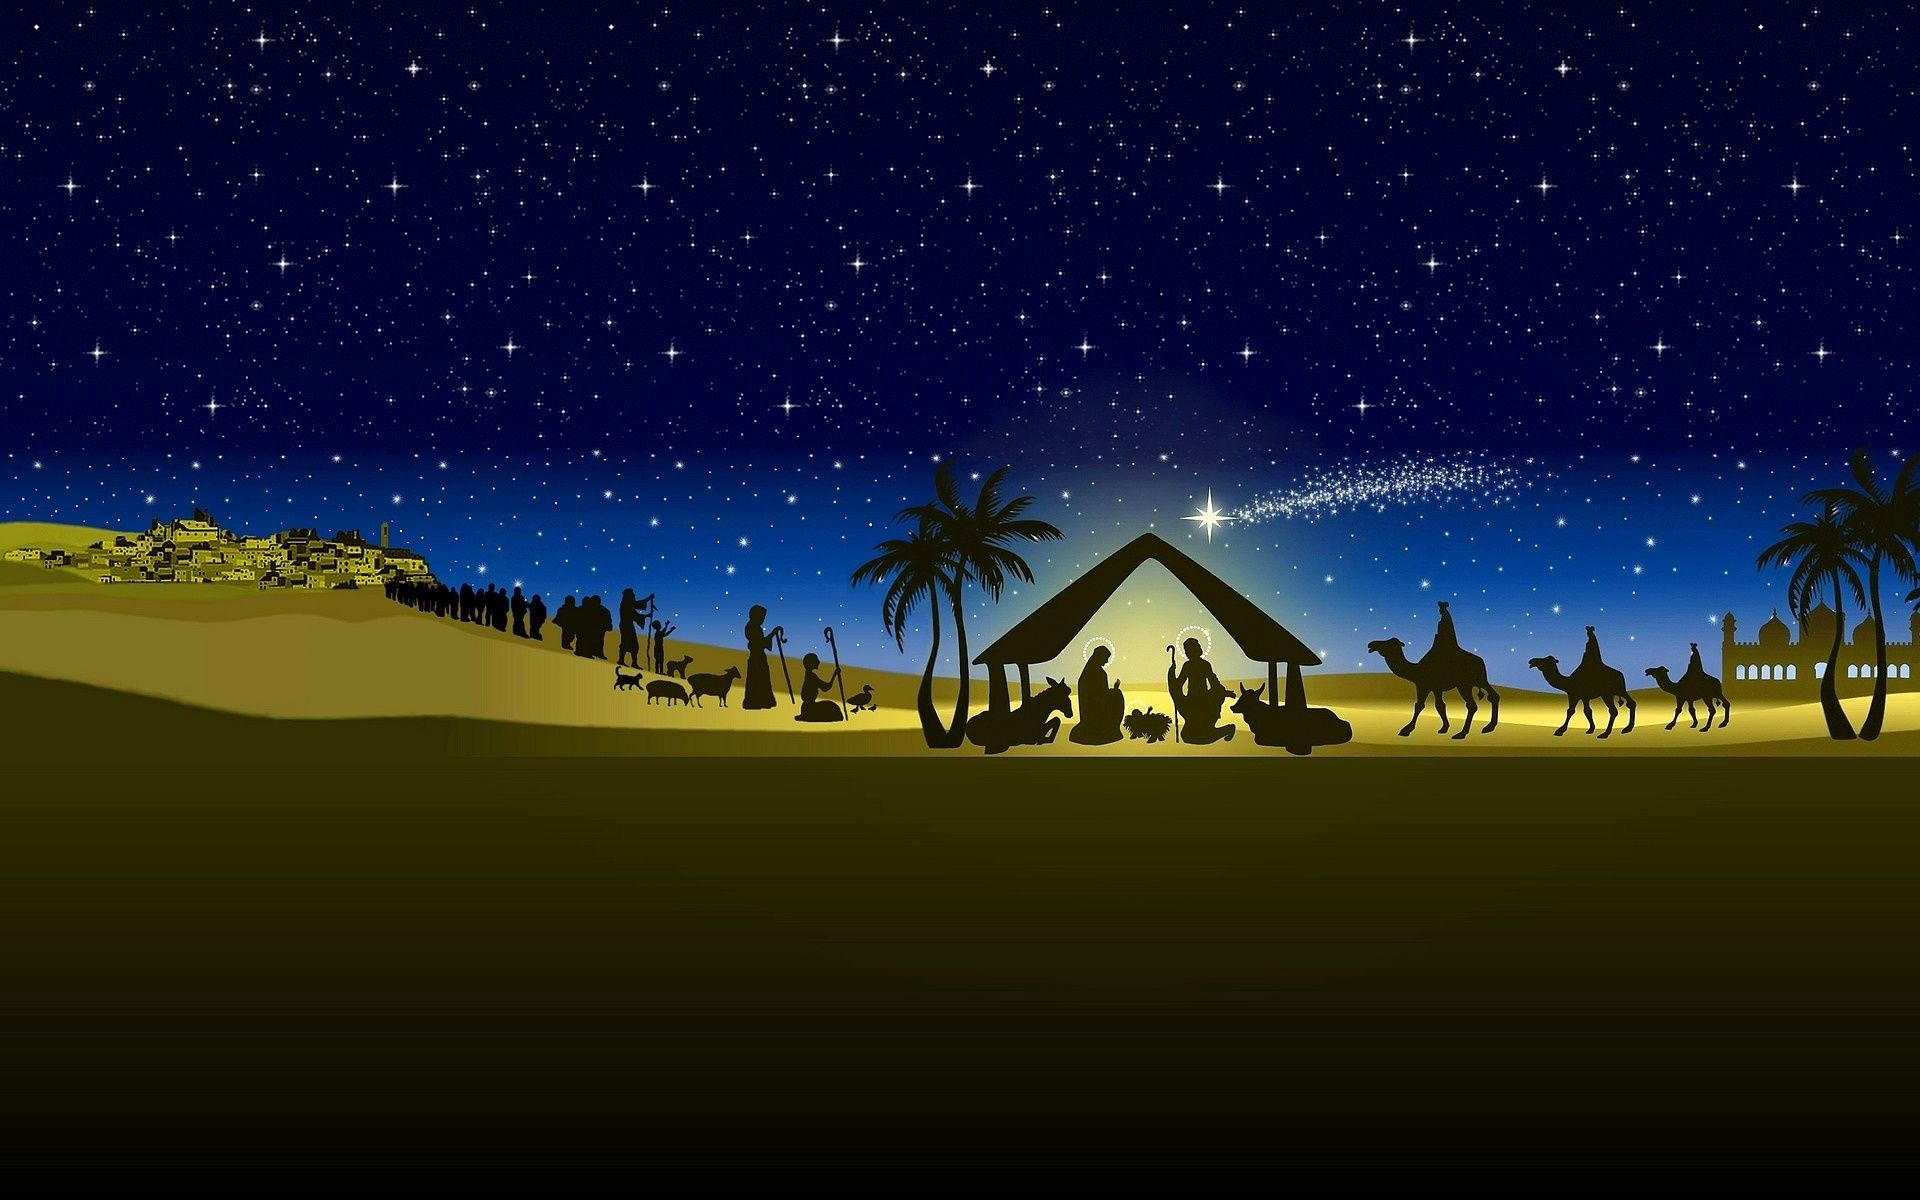 christmas-nativity-background-images-nativity-vector-hd-wallpaper-